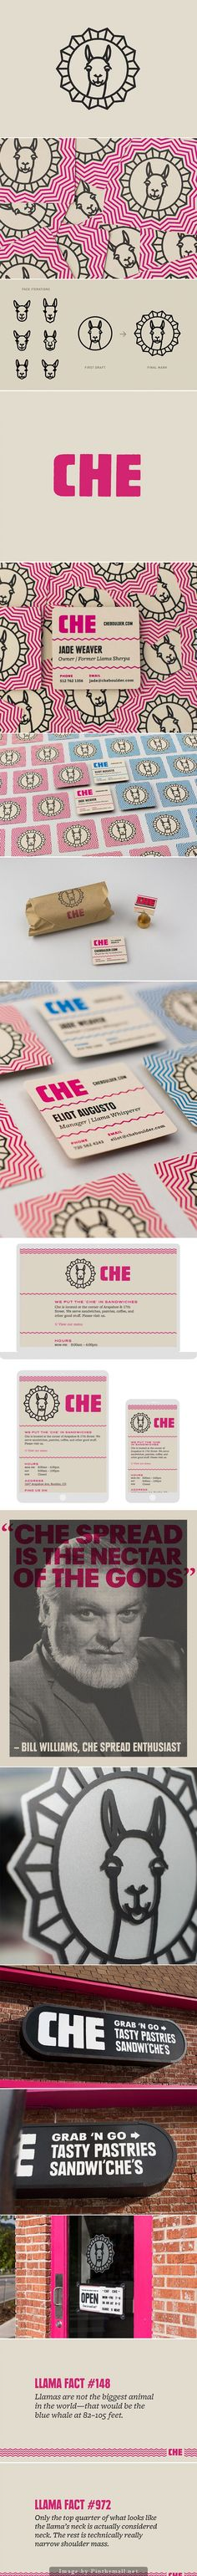 Cafe Che Branding / llama / logo / branding / identity / illustration / animal drawing / geometric / simple lines and shapes / pink and black / business card / stationary / signage / restaurant